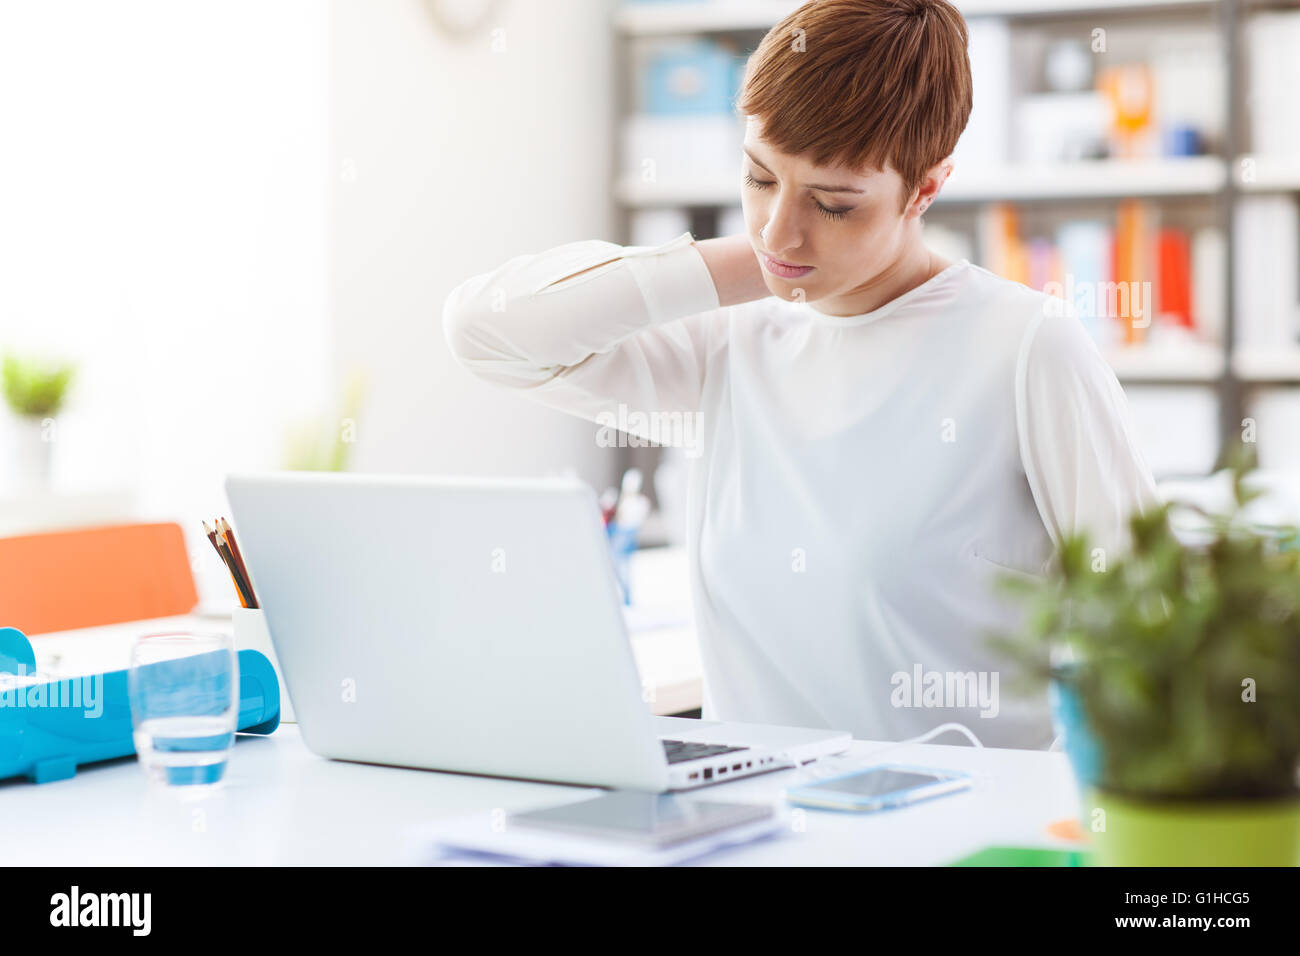 Office worker sitting at desk et toucher le dos, elle a une douleur au cou Photo Stock